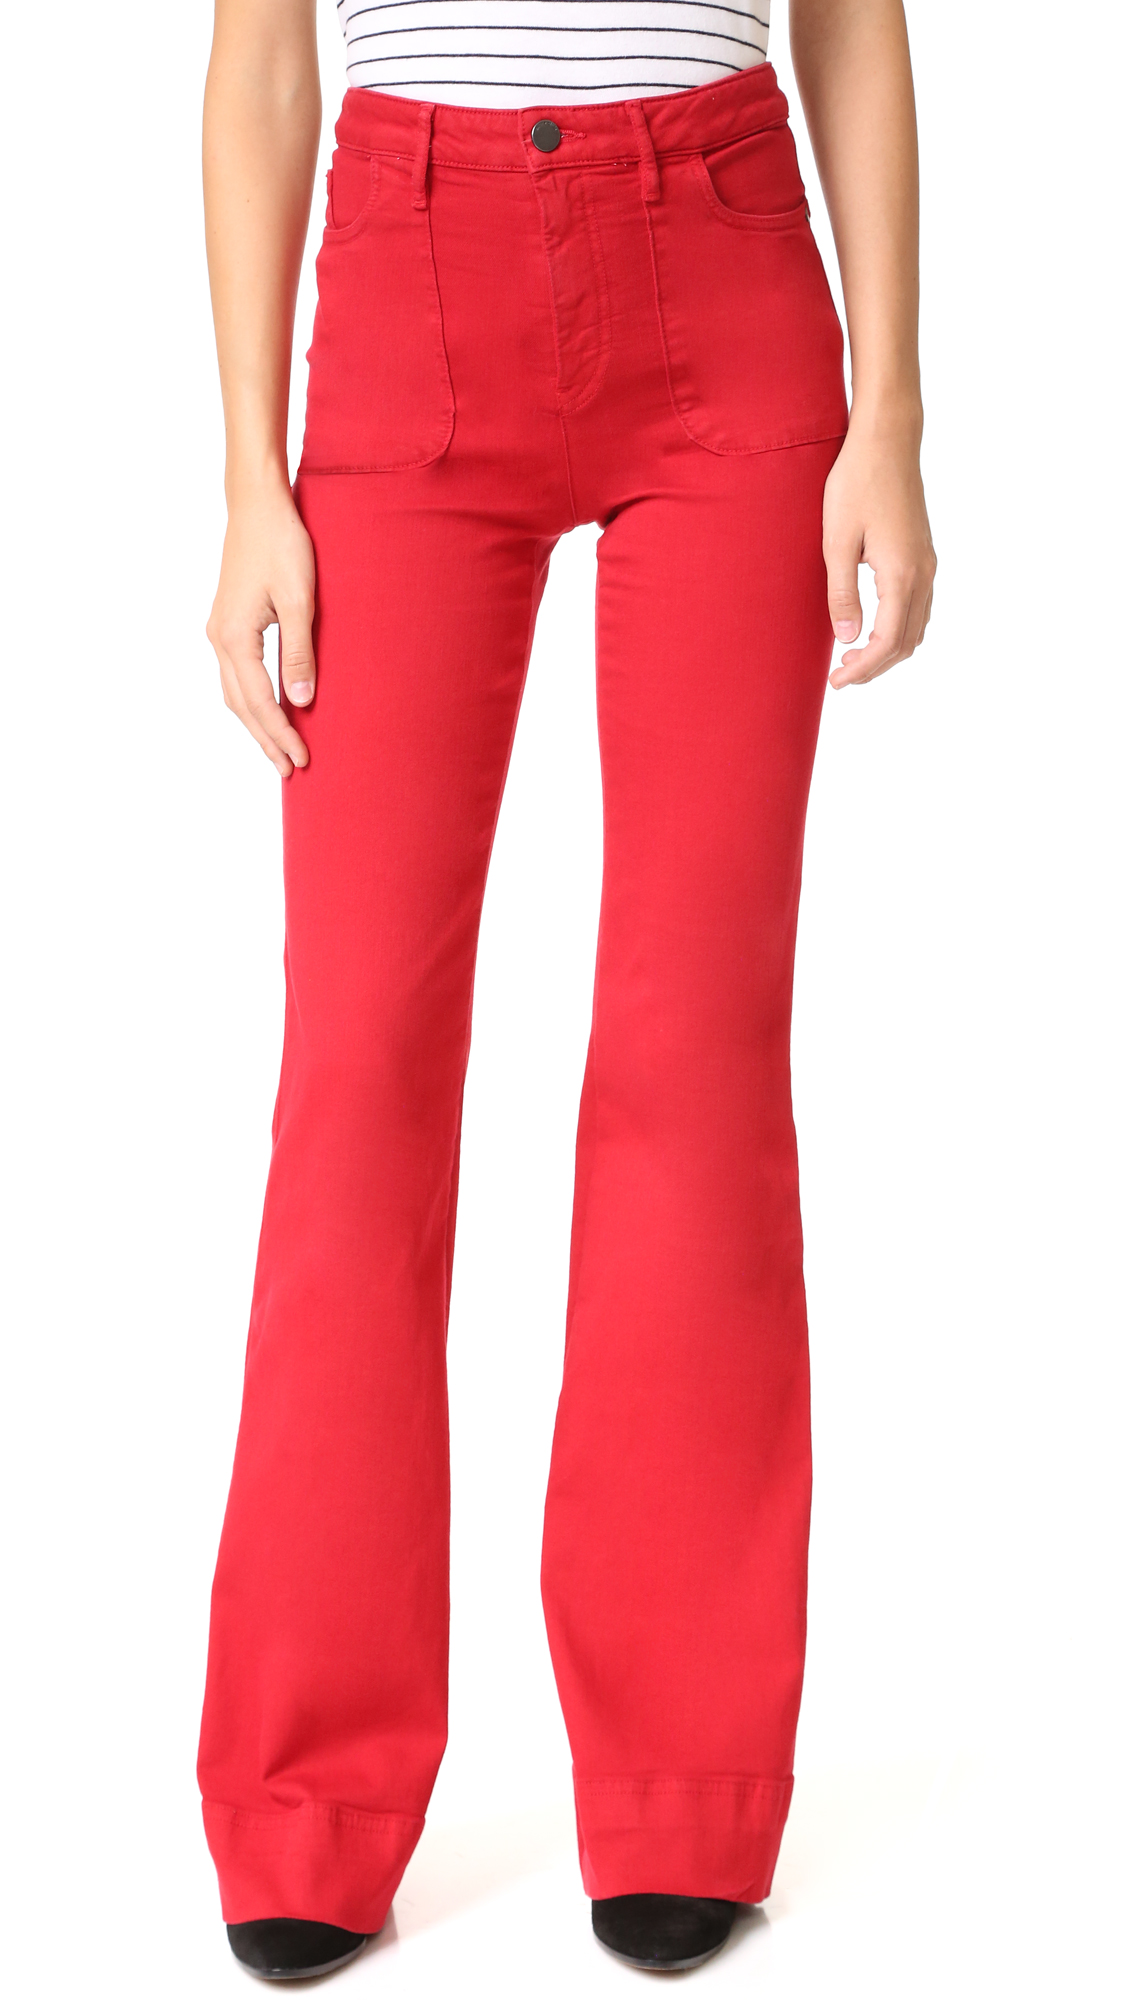 Alice + Olivia Juno High Waisted Wide Leg Jeans - Ruby at Shopbop